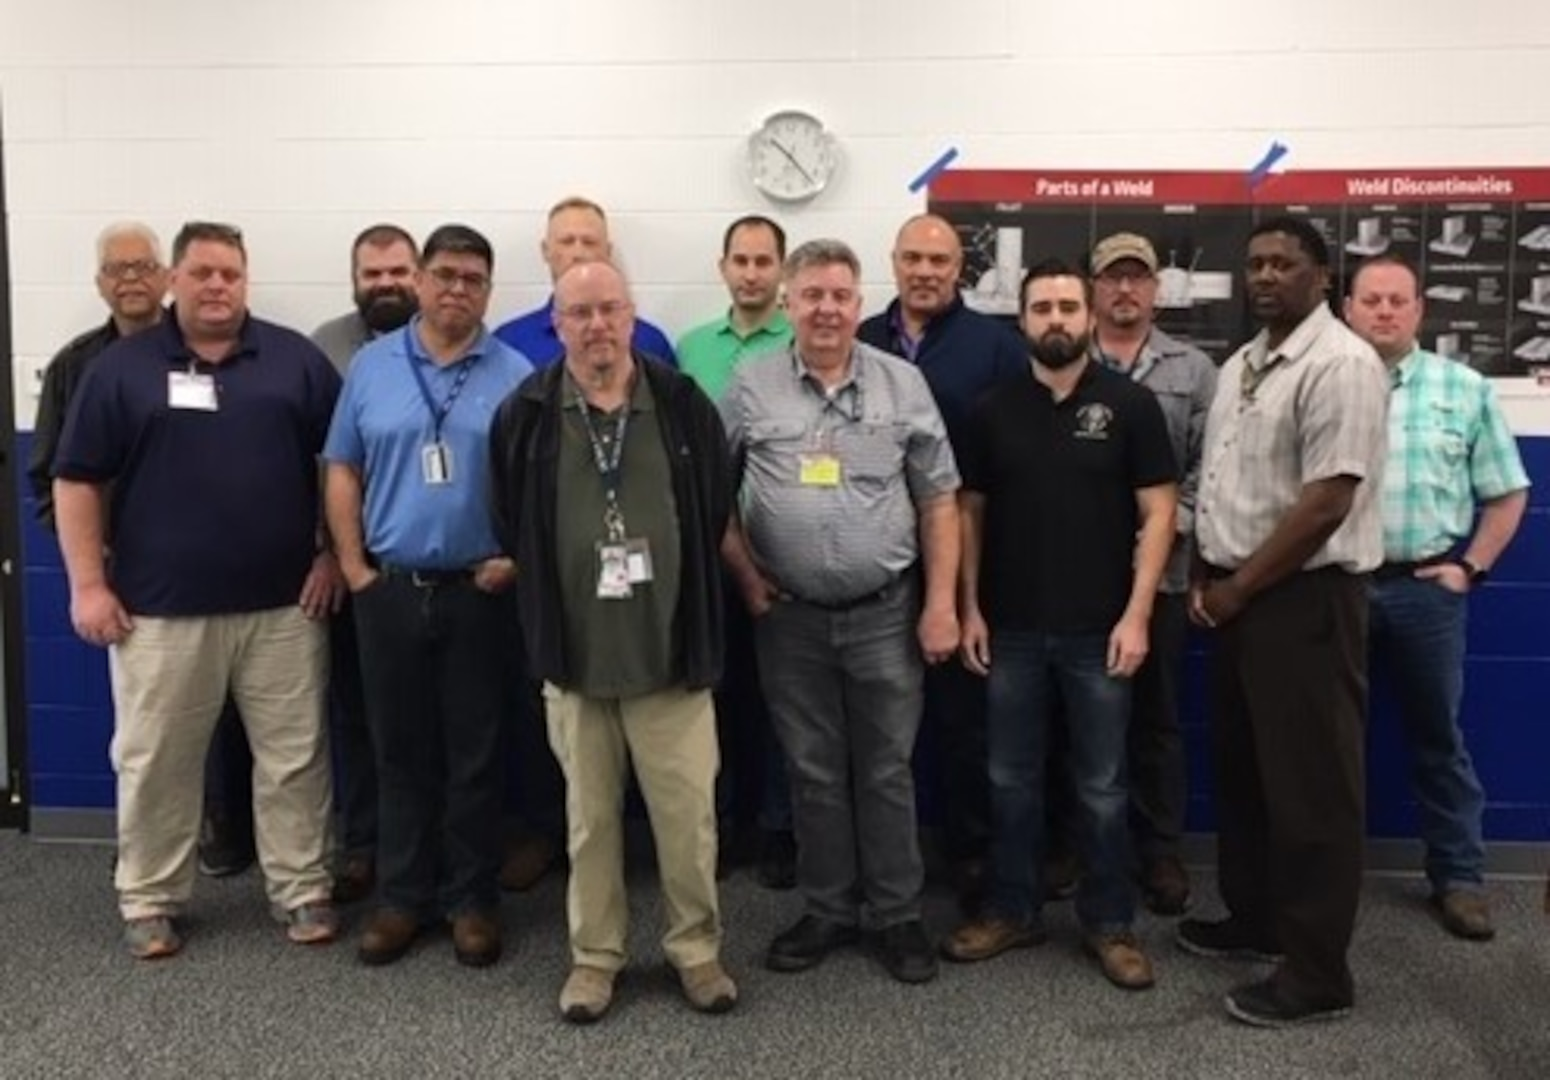 DCMA employees standing together.